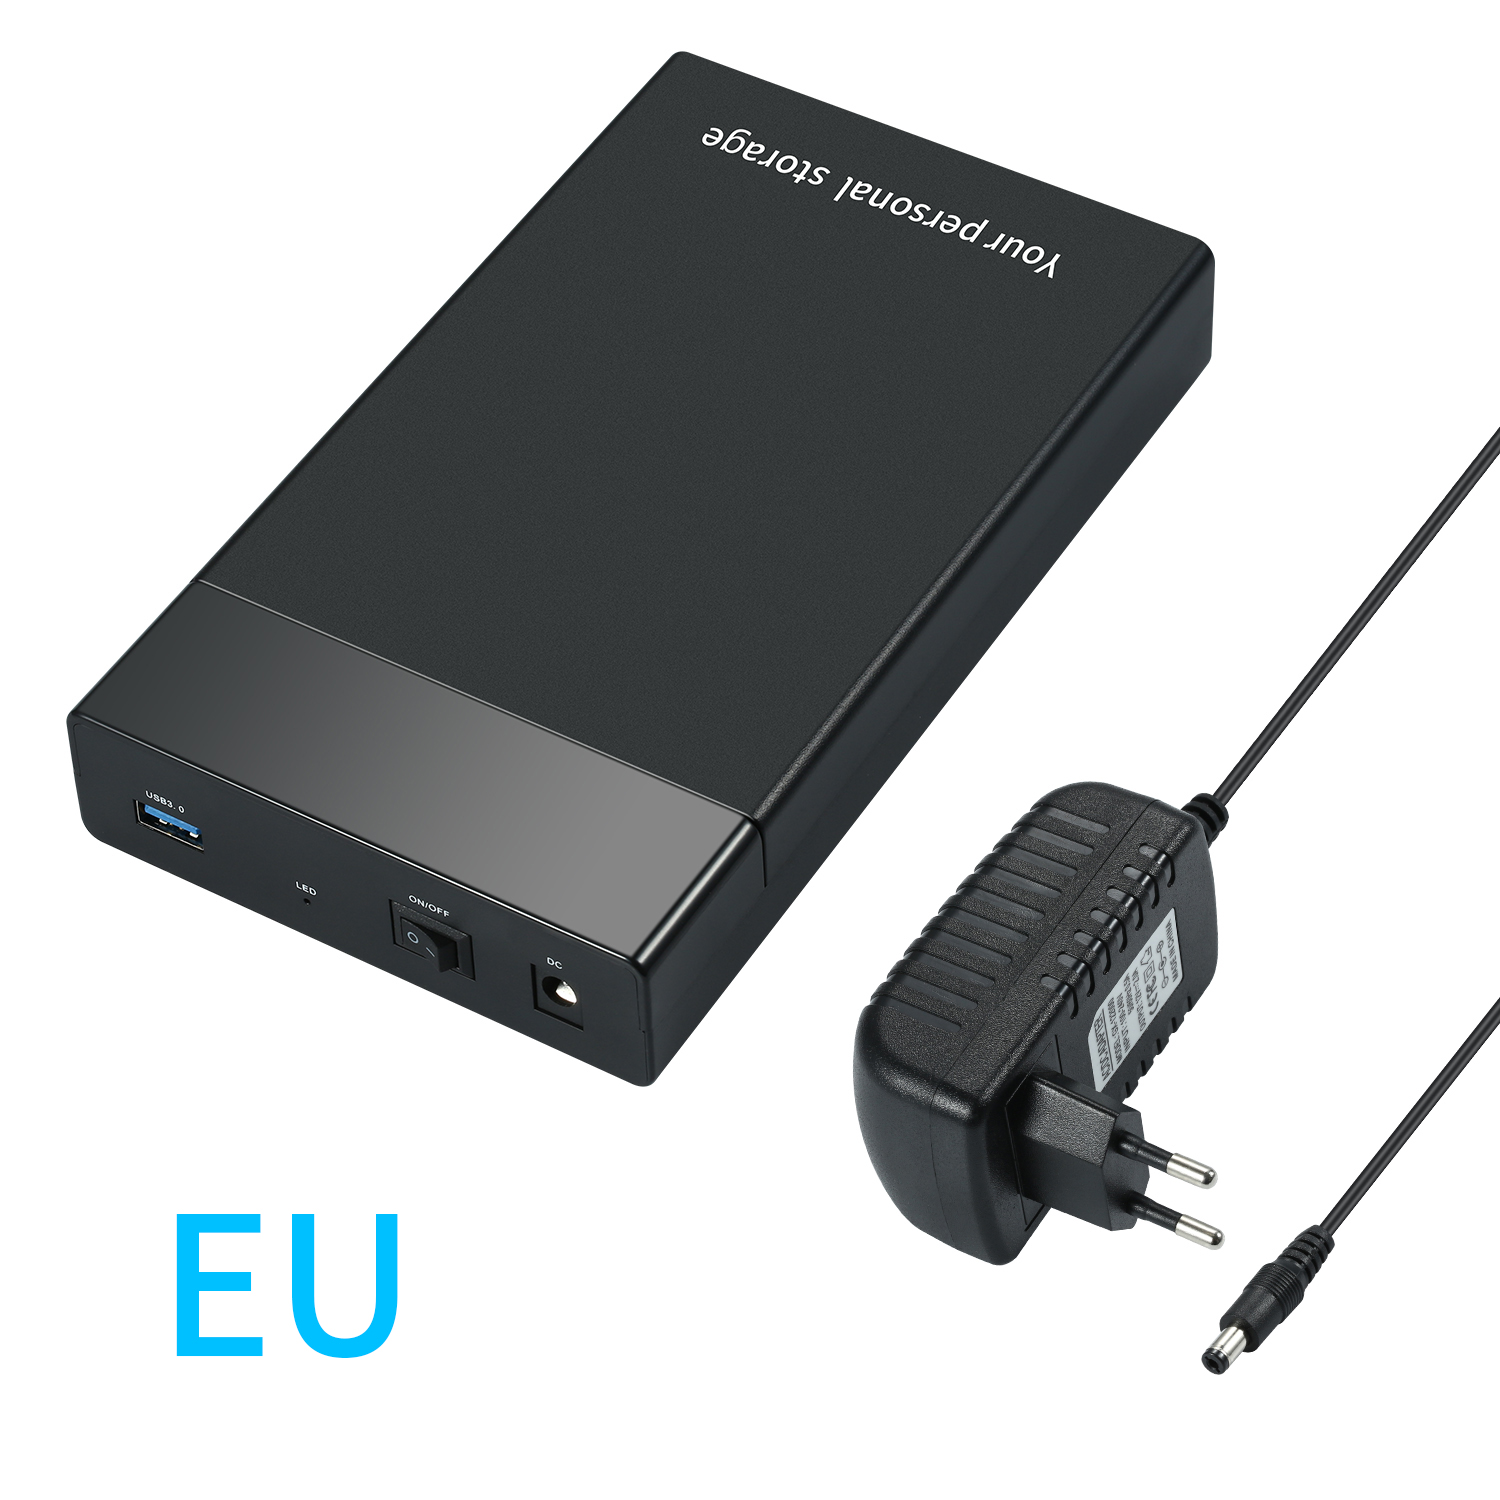 USB 3.0 to SATAIII 2.5Inch 3.5Inch Hard Drive Enclosure External 6Gbps HD SSD HDD Case for 2.5